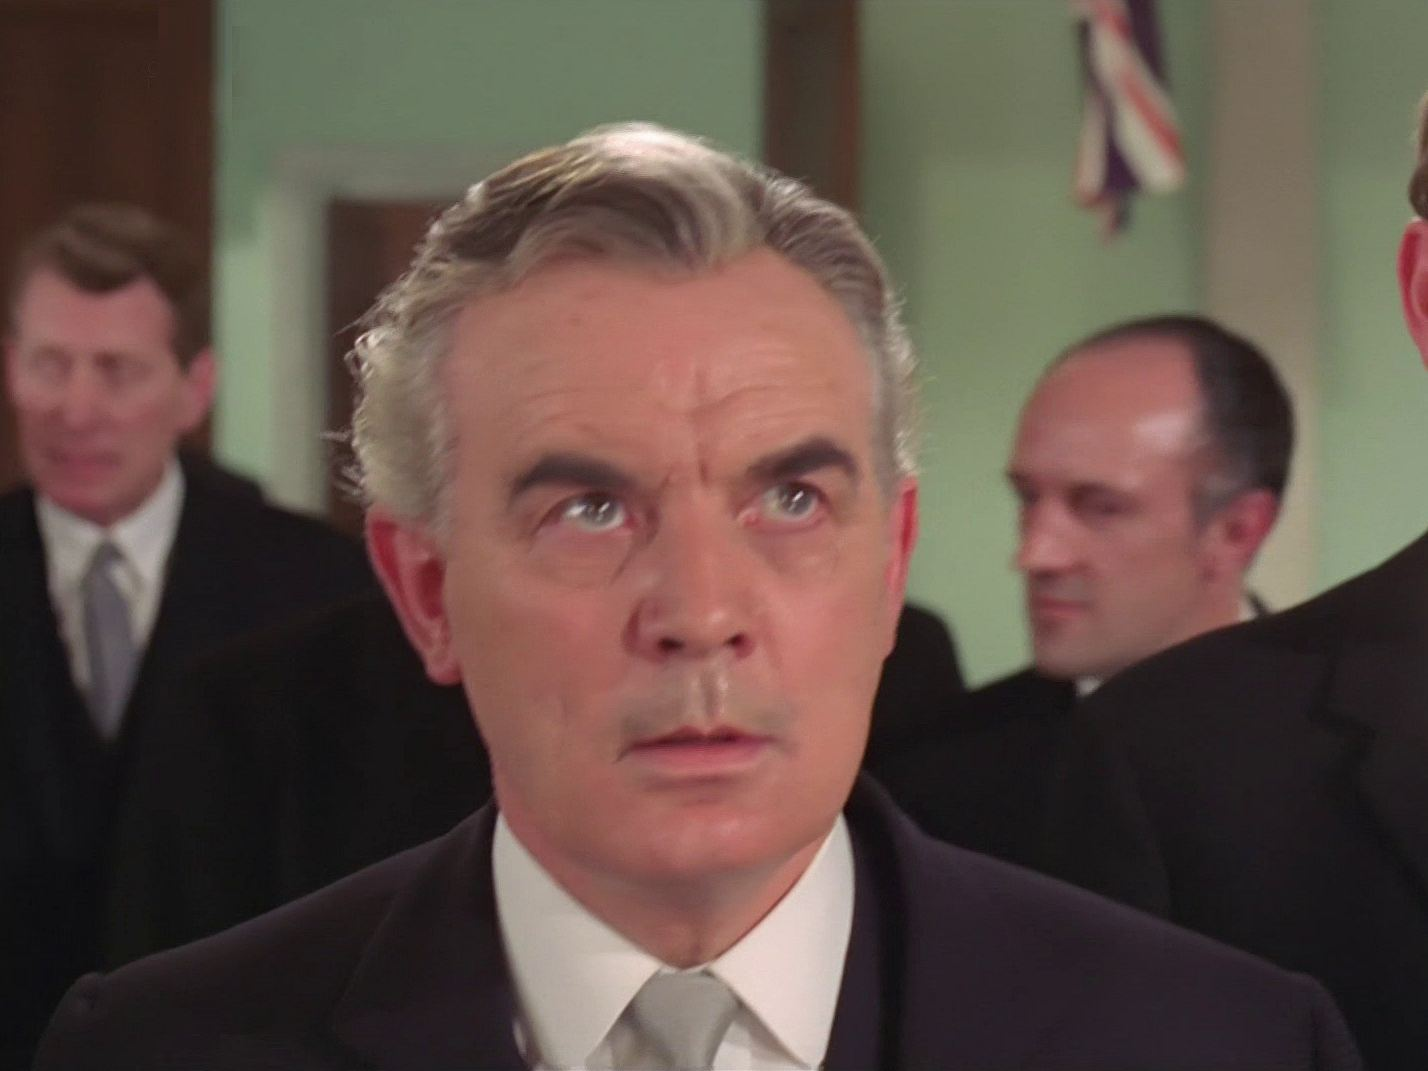 Screenshot from the 1967 'Death's Door' episode of The Avengers (1961-69) (1) featuring Clifford Evans